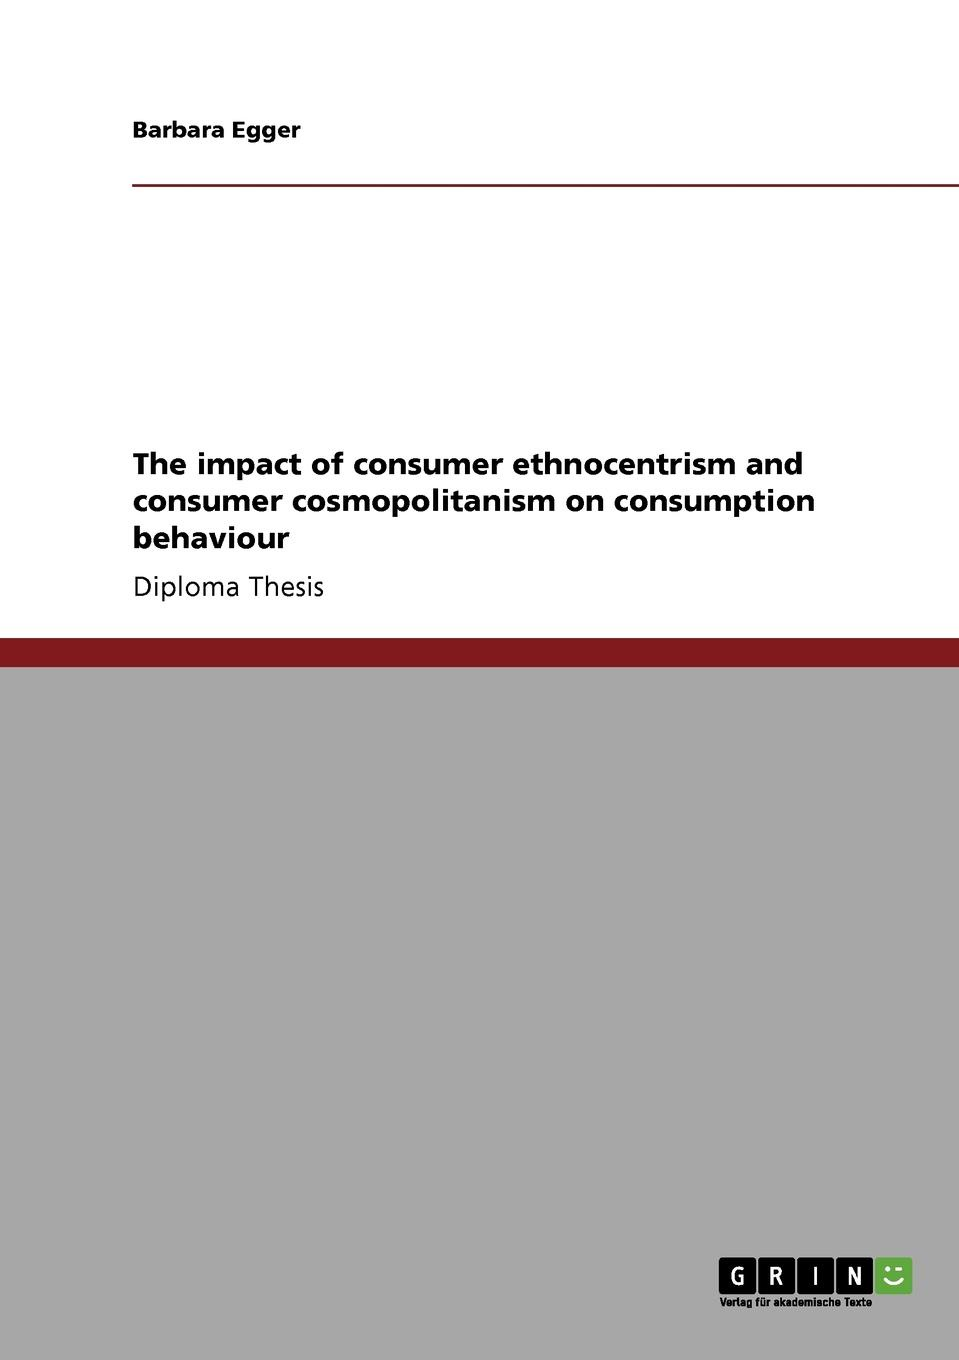 Barbara Egger The impact of consumer ethnocentrism and consumer cosmopolitanism on consumption behaviour alexander jutkowitz the strategic storyteller content marketing in the age of the educated consumer